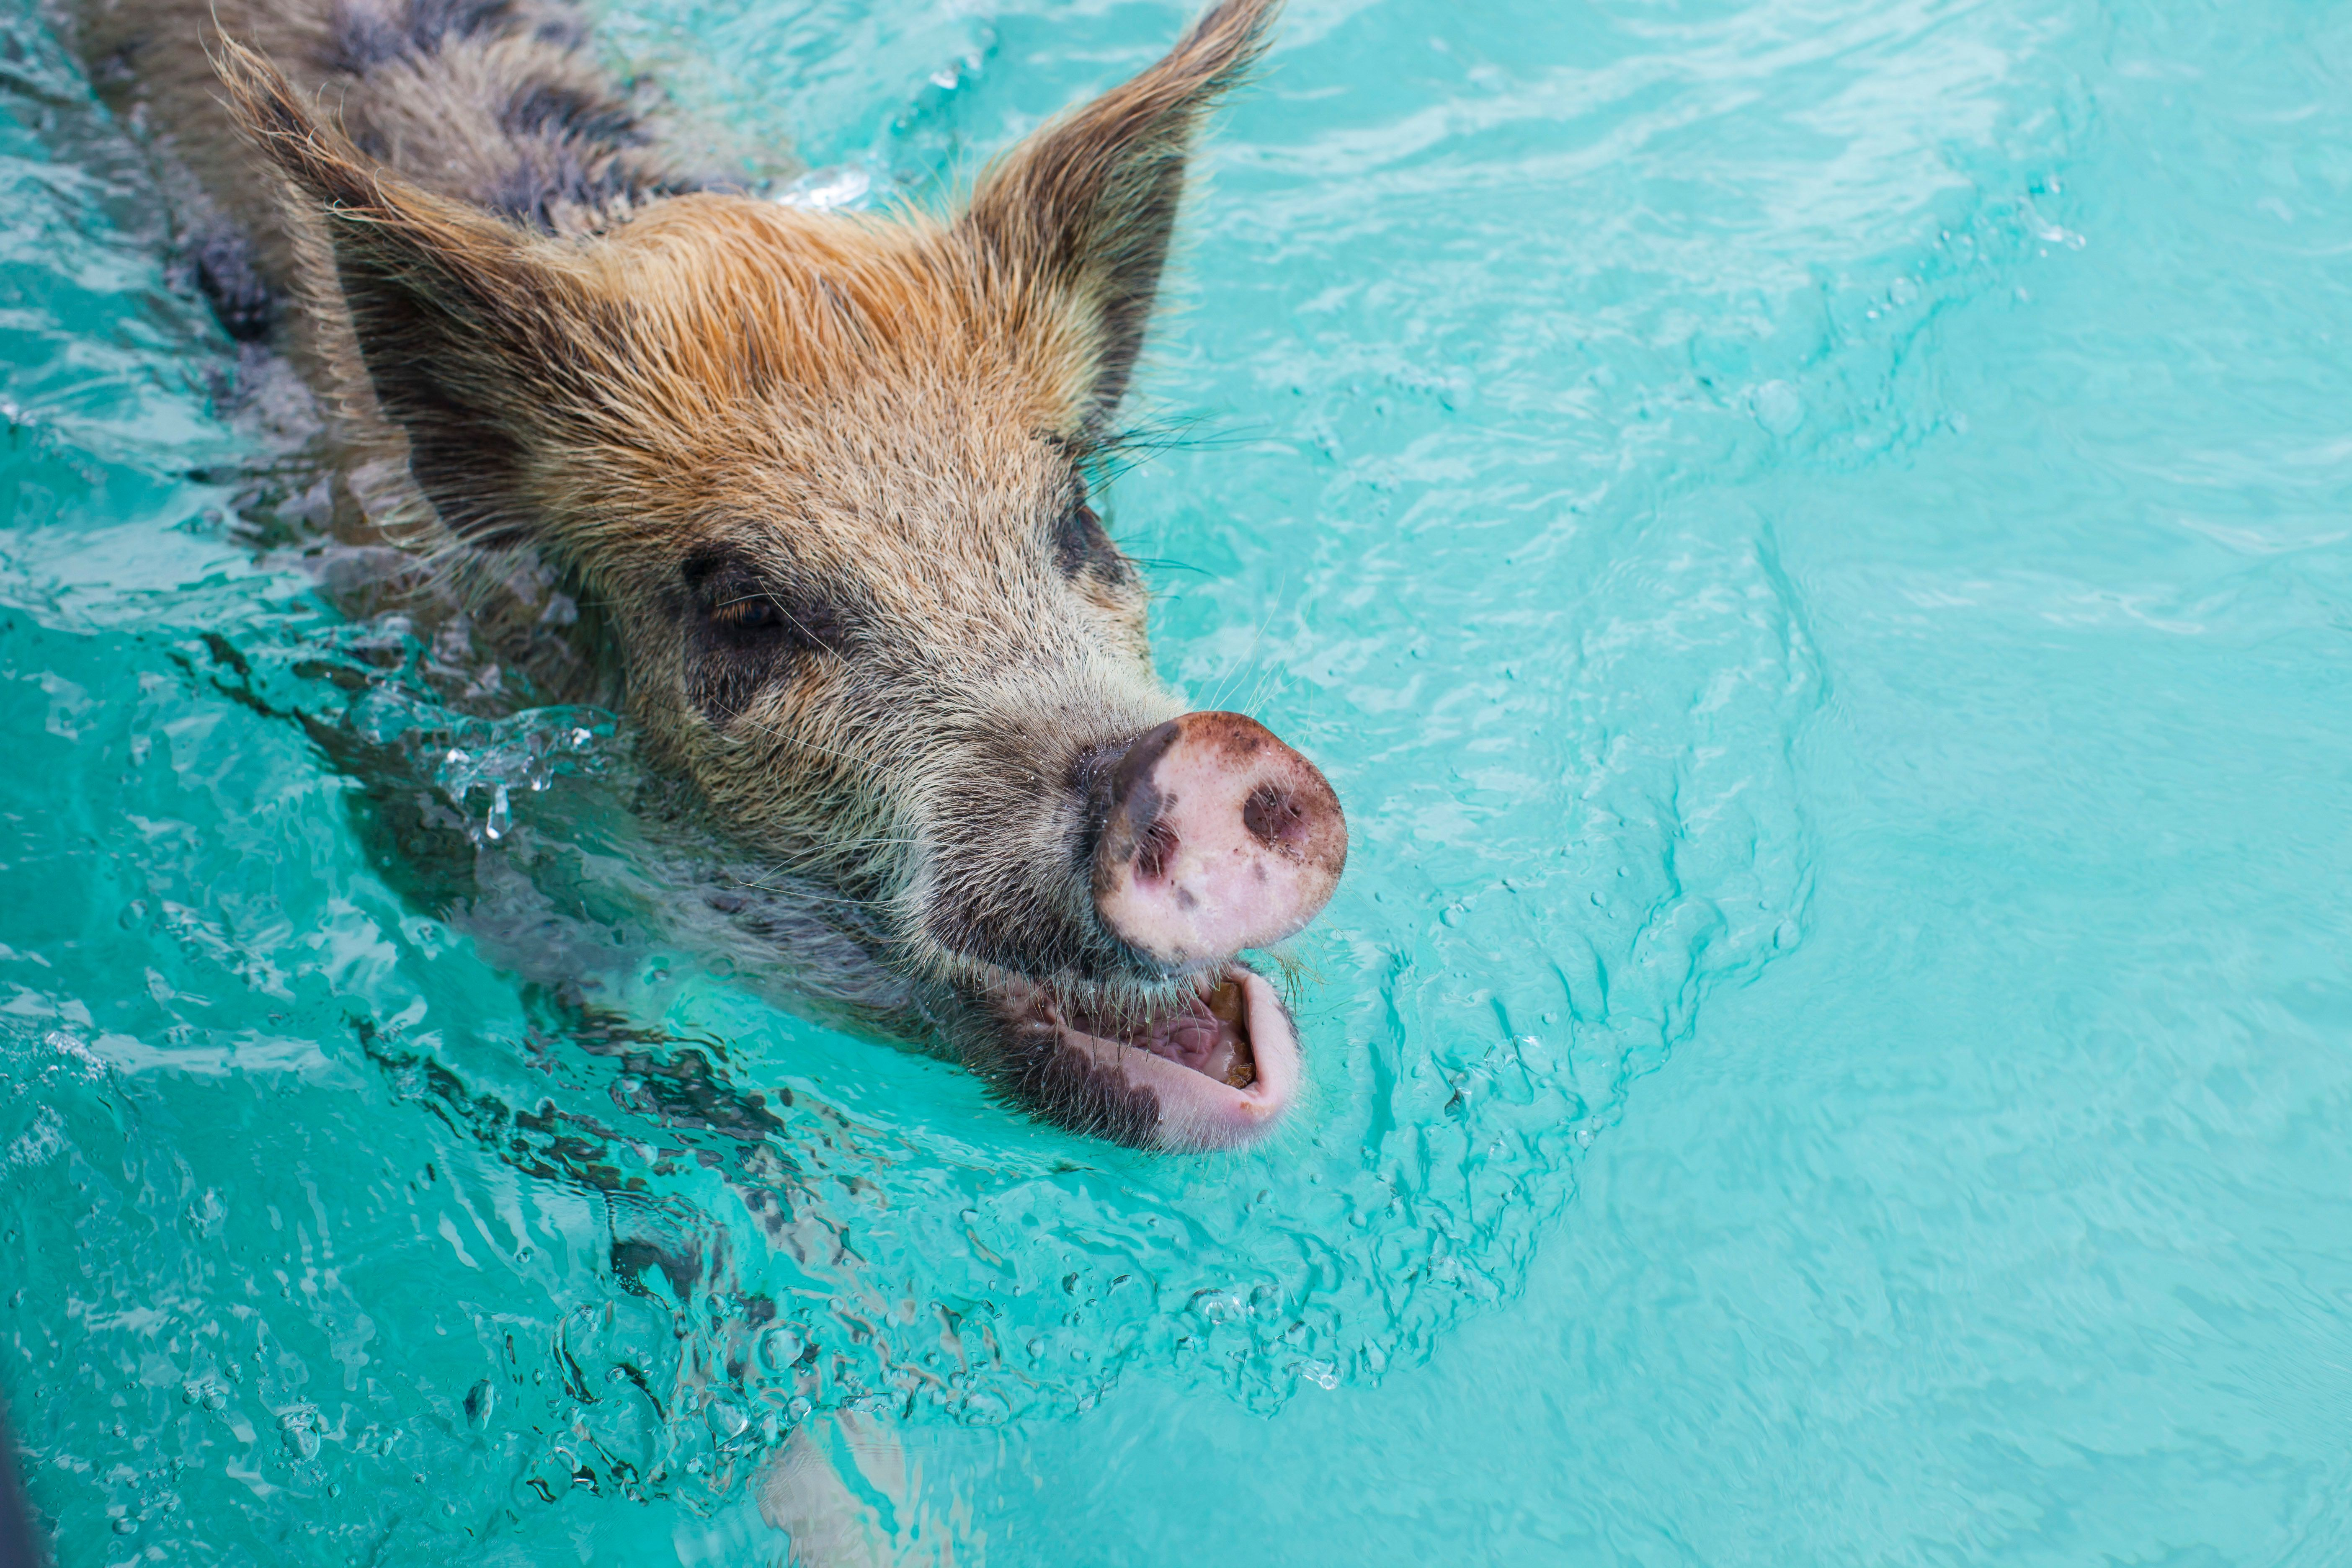 One of the famous swimming pigs in